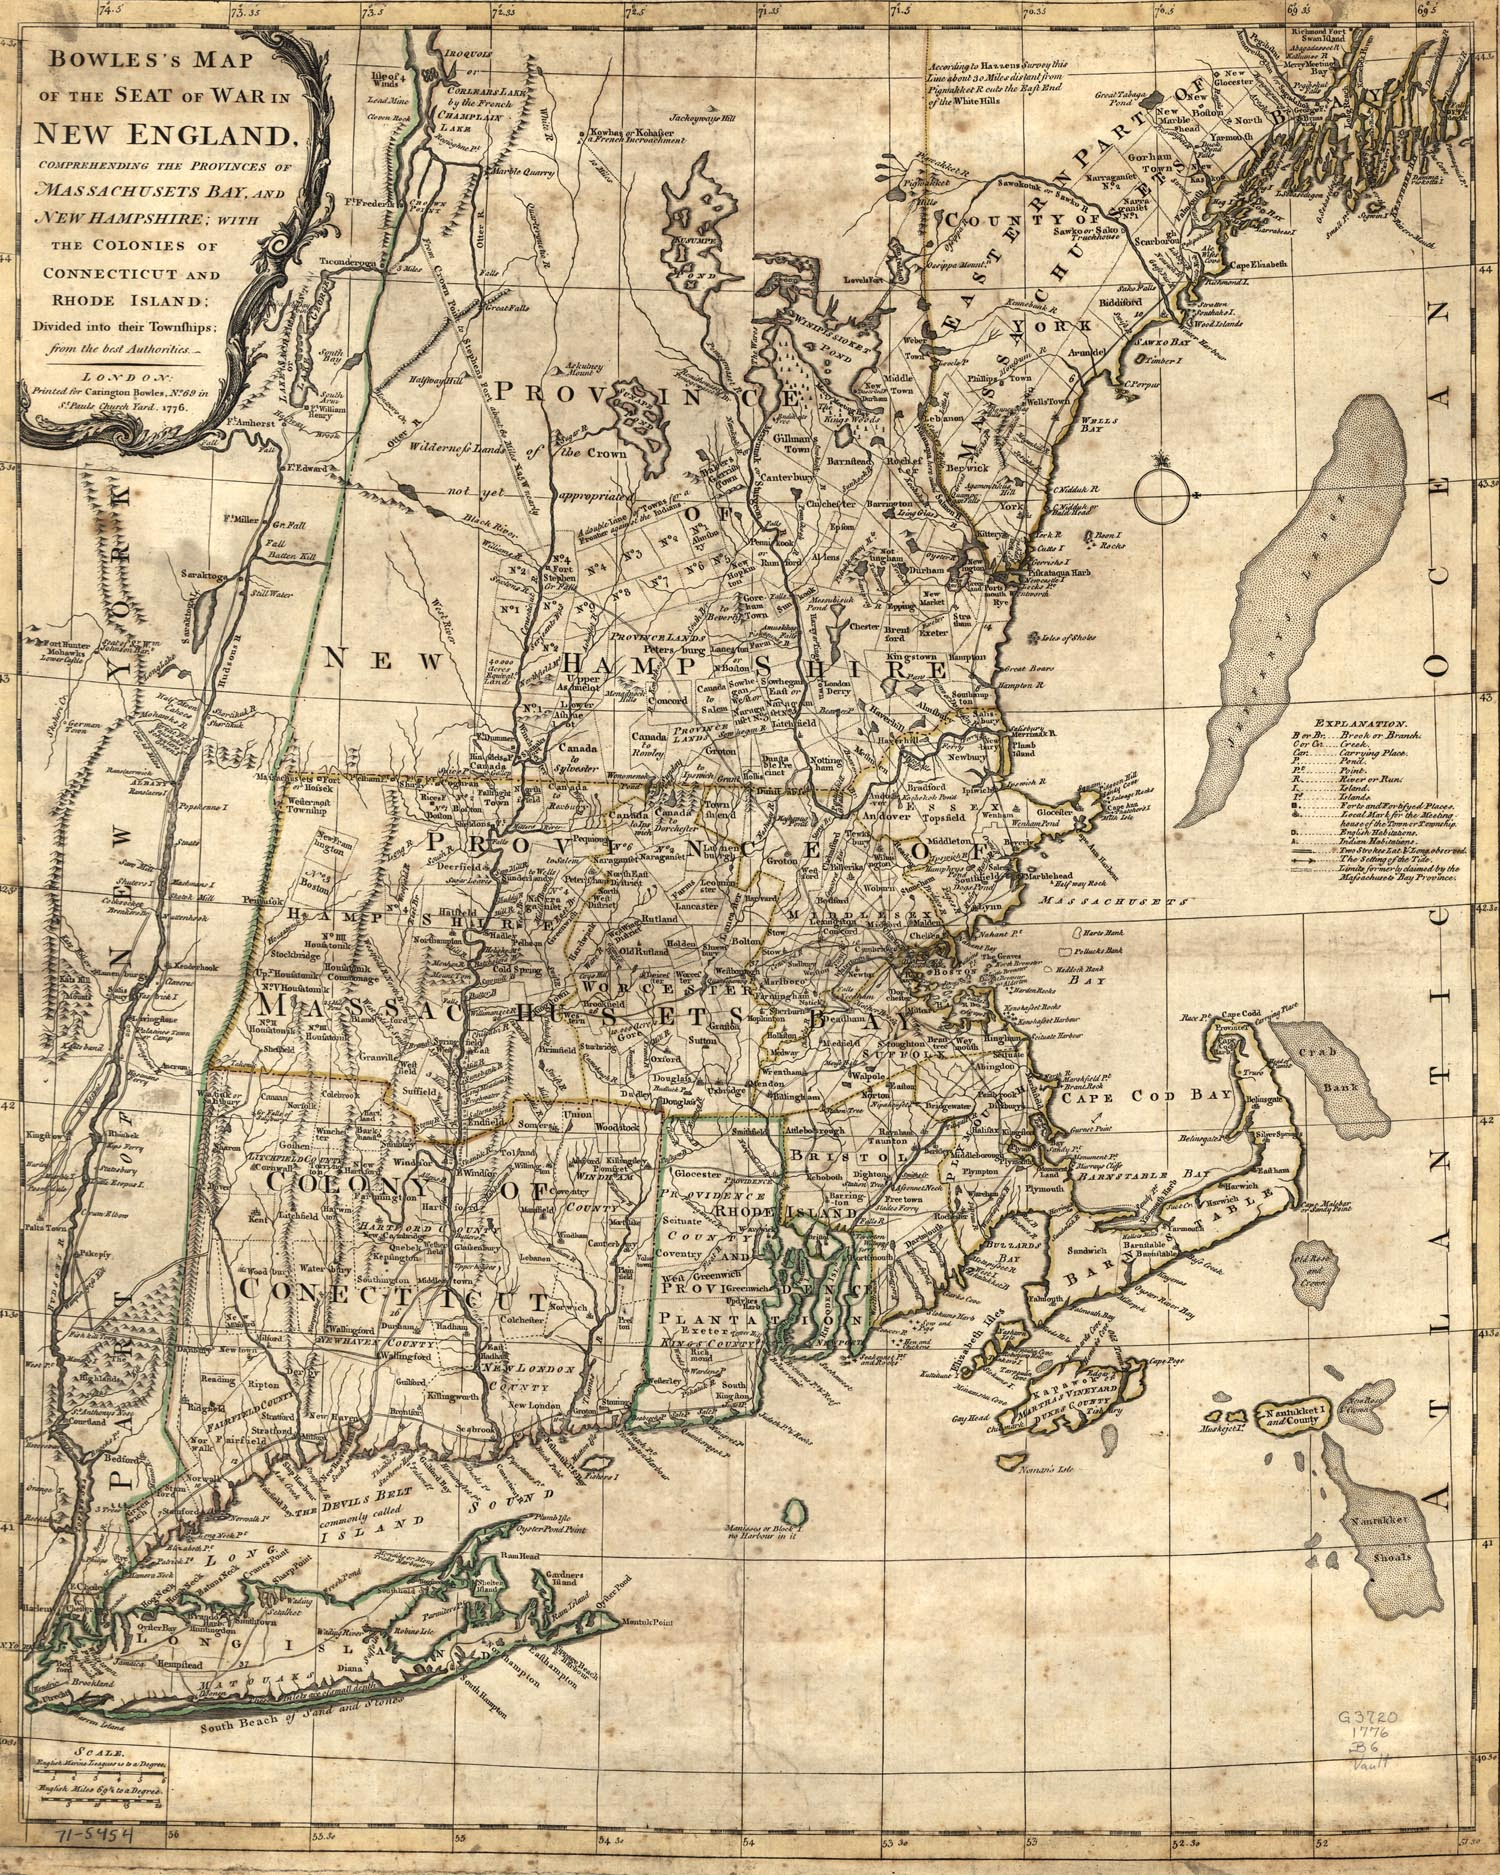 the new england colonies The new england colonies of british america included colonies of massachusetts bay colony, connecticut colony, colony of rhode island and providence plantations and province of new hampshire they were part of the thirteen colonies including the middle colonies and the southern colonies.